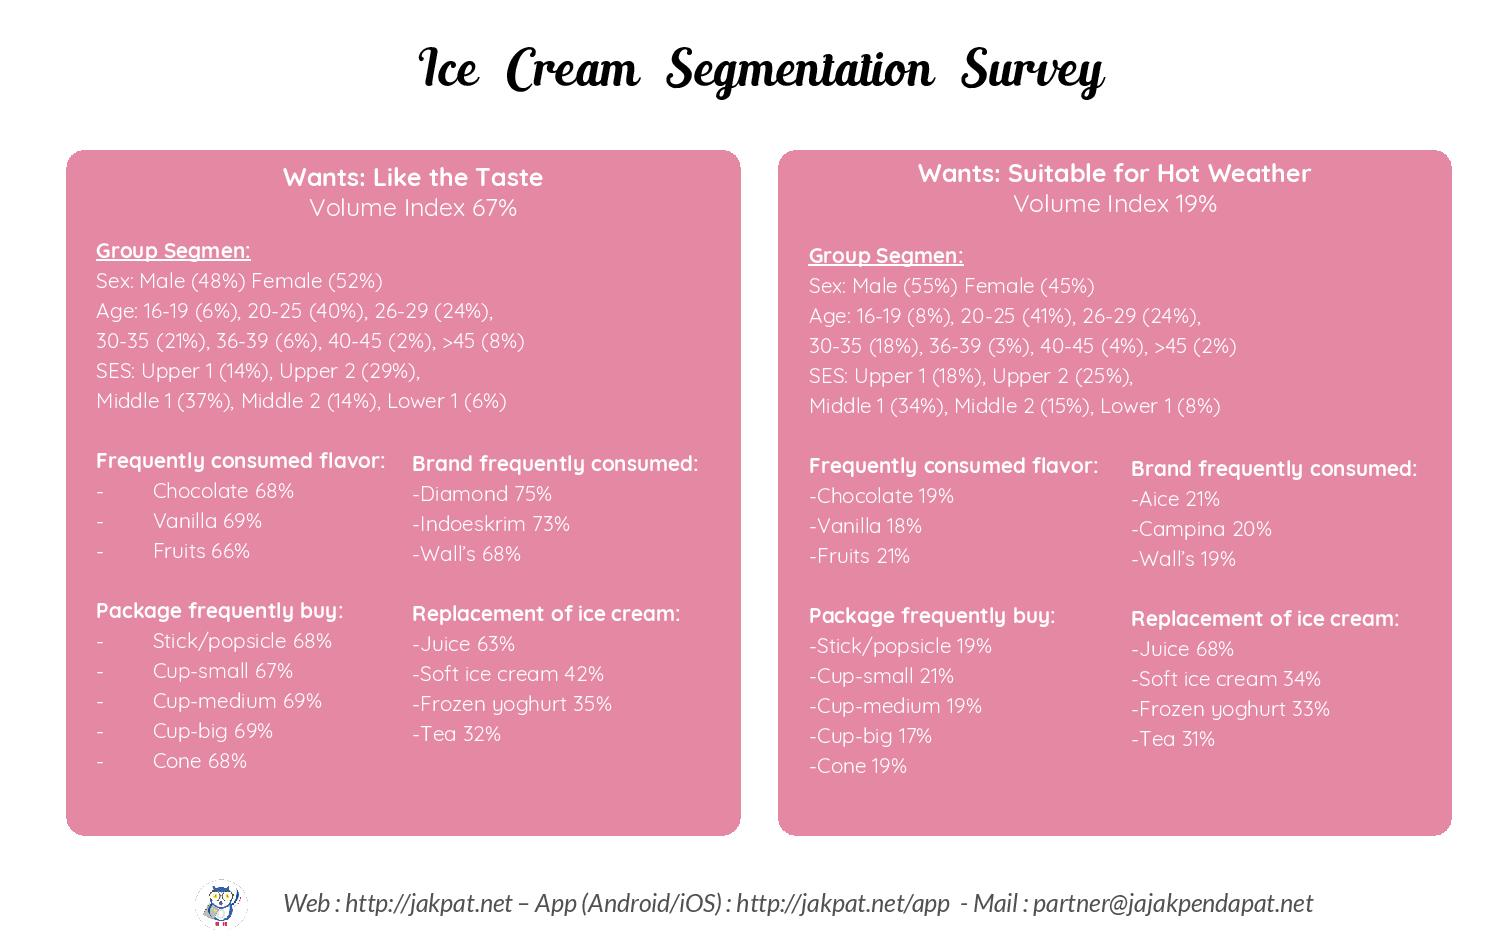 Segmentation Survey Ice Cream 1.2-page-015